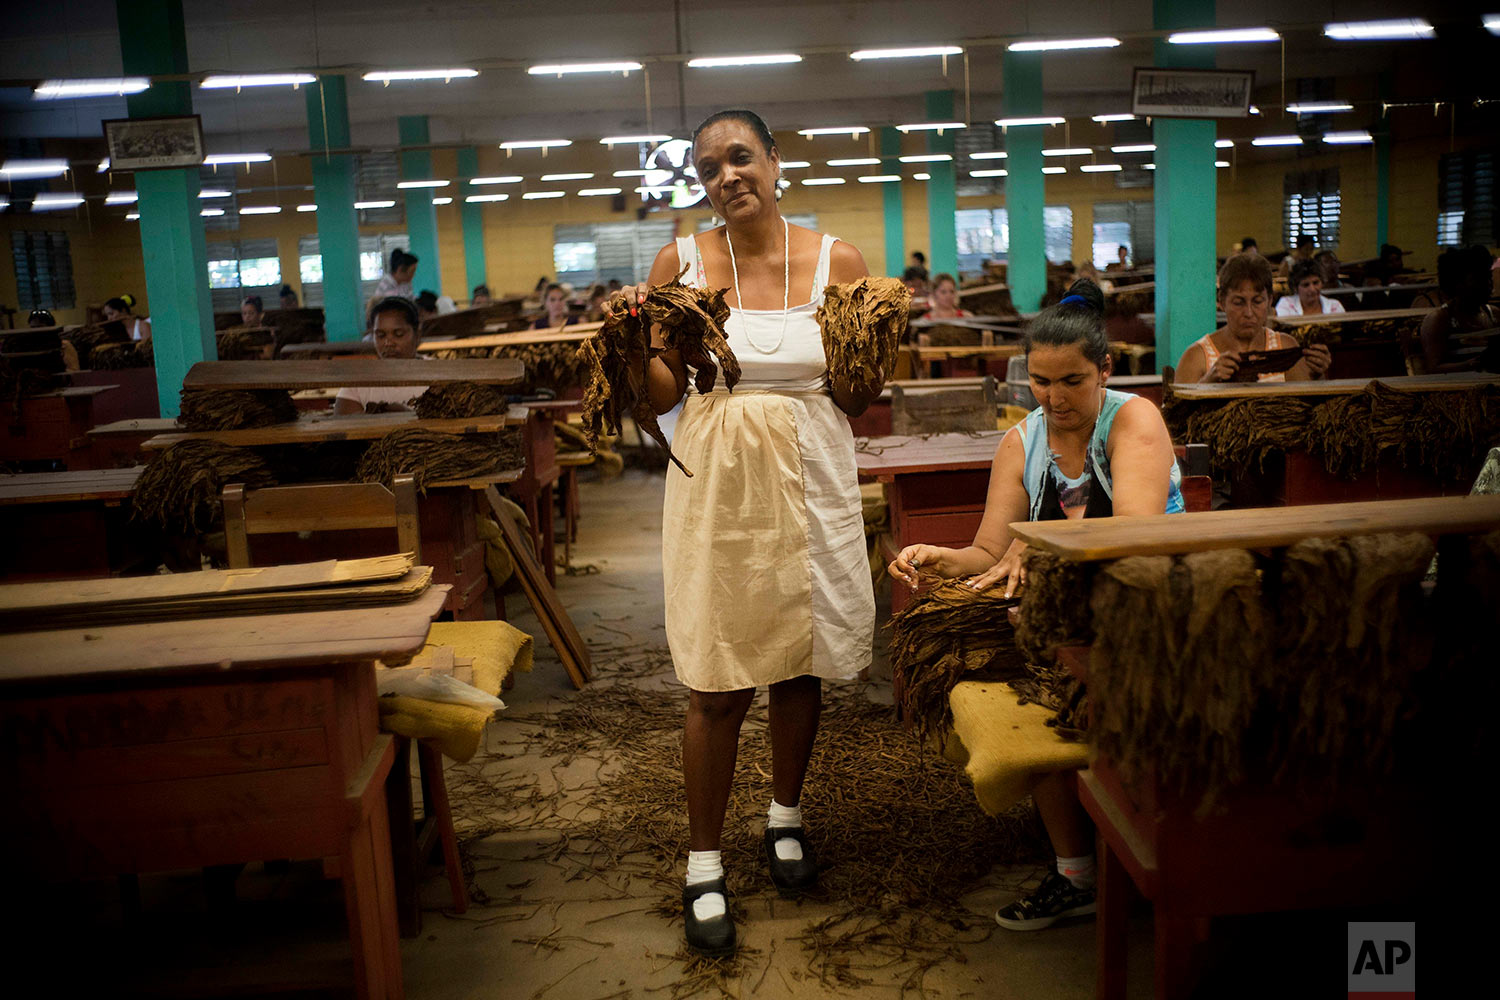 """In this Feb. 27, 2018 photo, Farra Marquez Rubiera, a worker specialized in the """"despalillo"""" poses with dry harvested tobacco leaves at a state-run warehouse in San Luis, in Cuba's Western province of Pinar del Rio. (AP Photo/Ramon Espinosa)"""